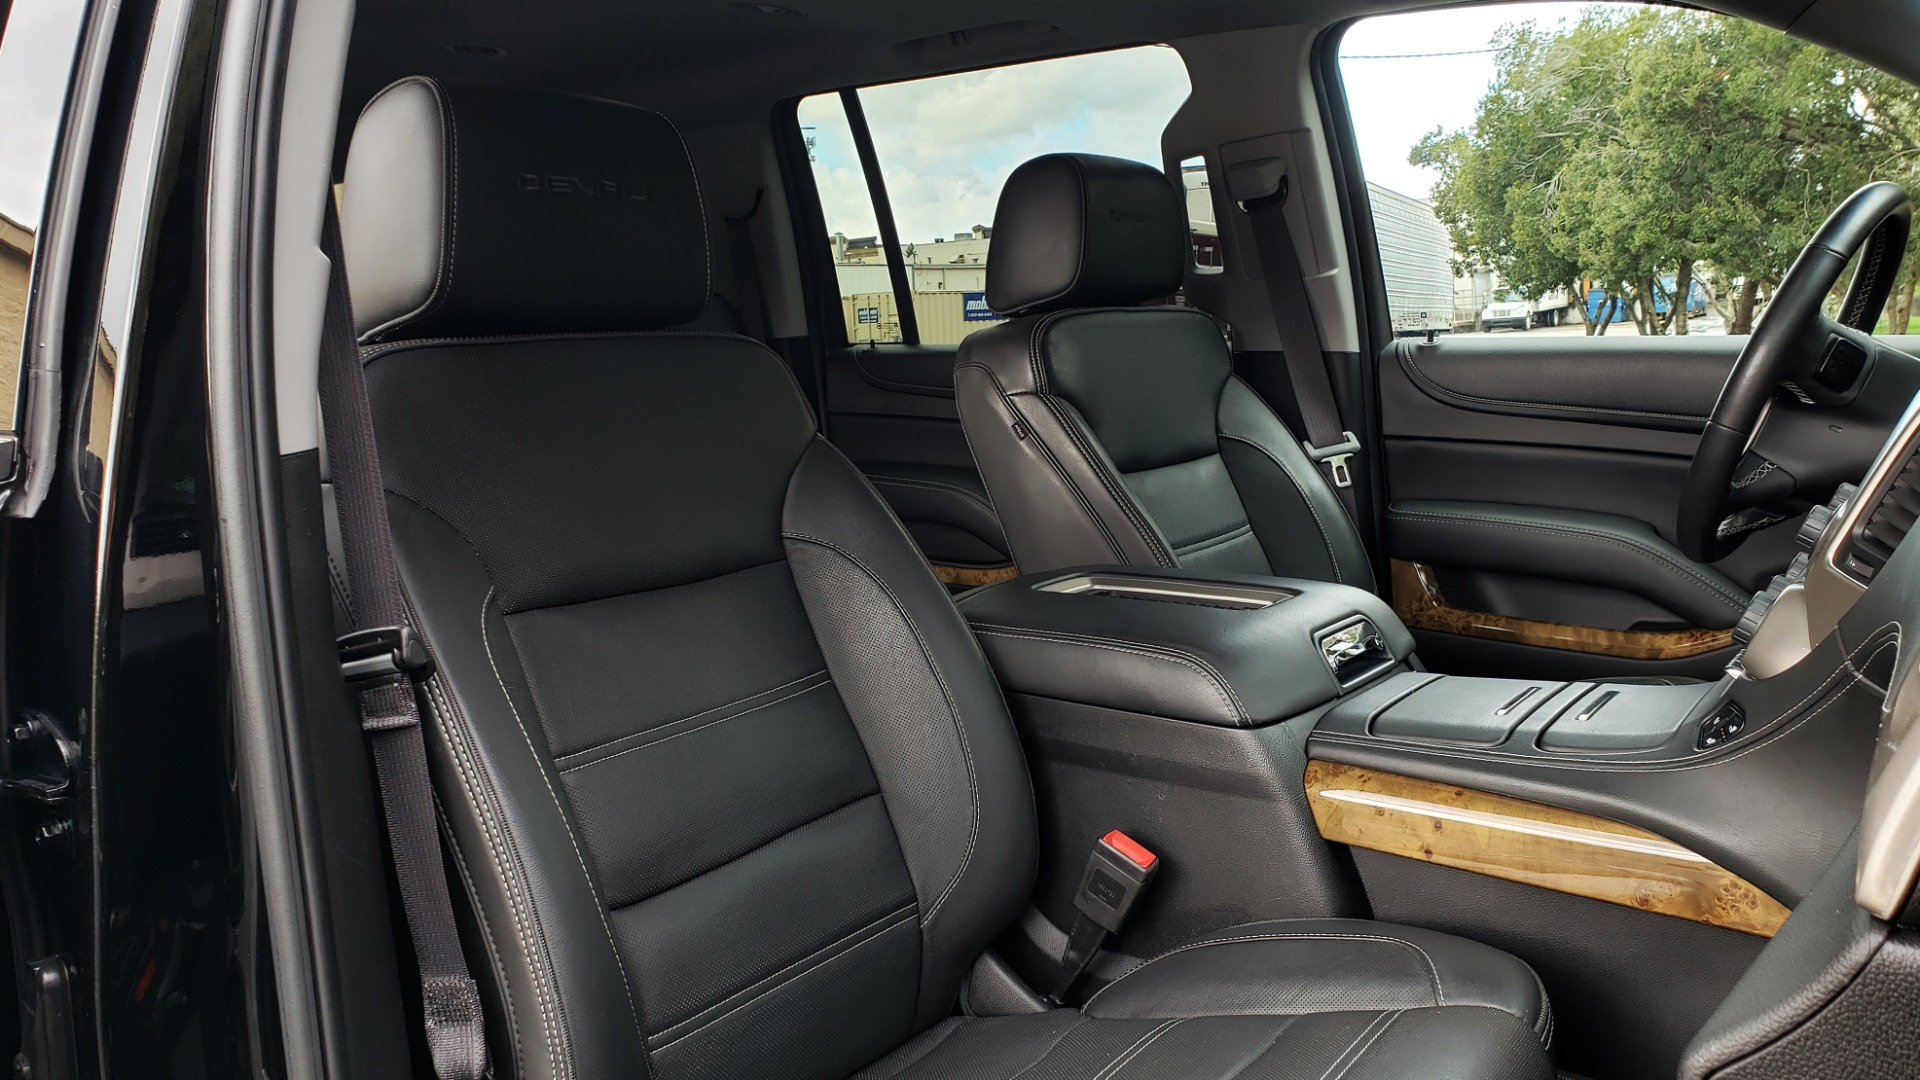 Used 2017 GMC YUKON XL DENALI 4WD / NAV / SUNROOF / ENT / 3-ROWS / BOSE / REARVIEW for sale Sold at Formula Imports in Charlotte NC 28227 77